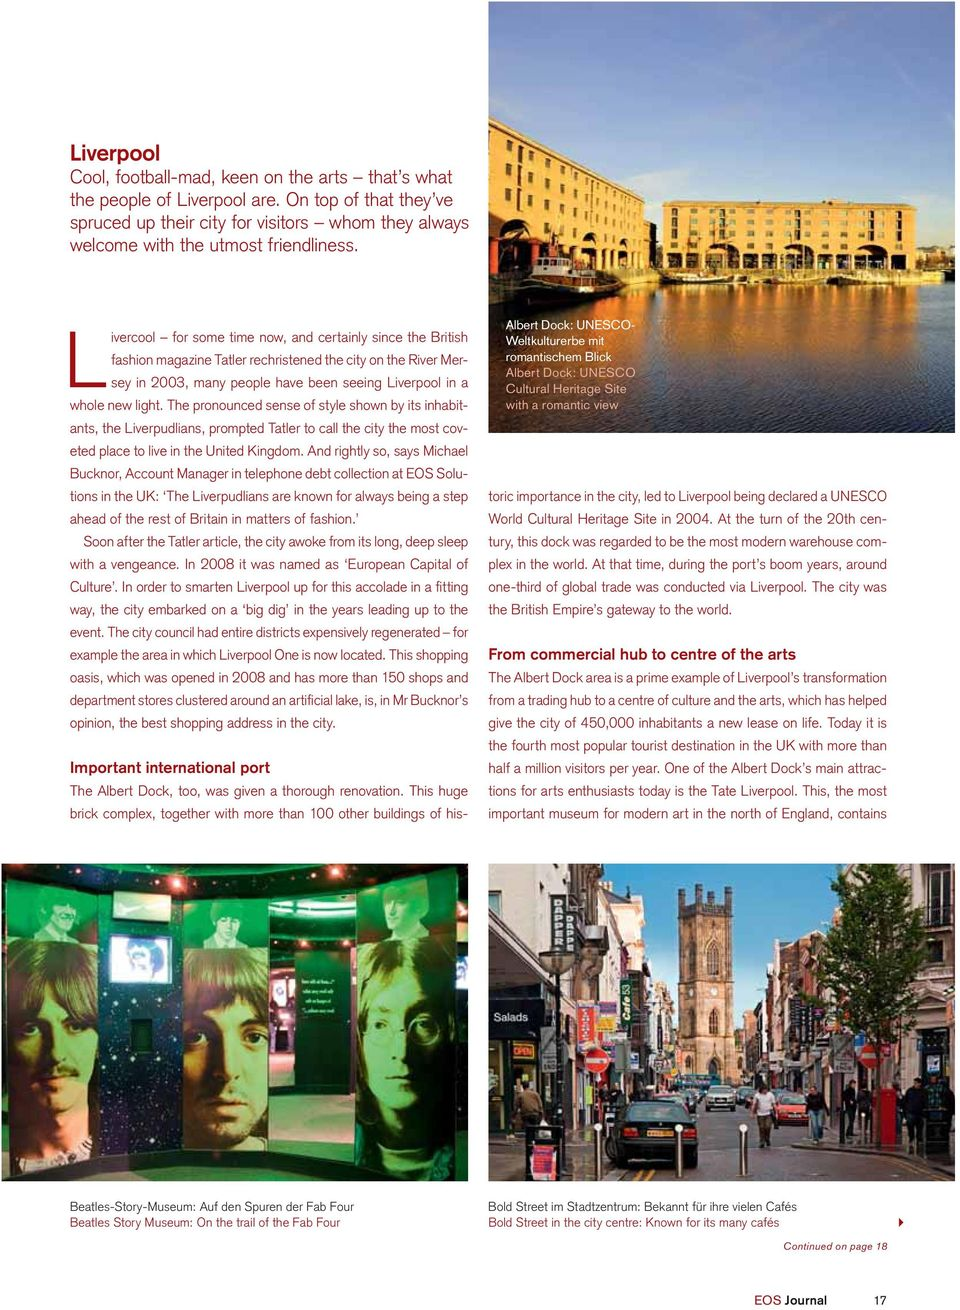 The pronounced sense of style shown by its inhabitants, the Liverpudlians, prompted Tatler to call the city the most coveted place to live in the United Kingdom.